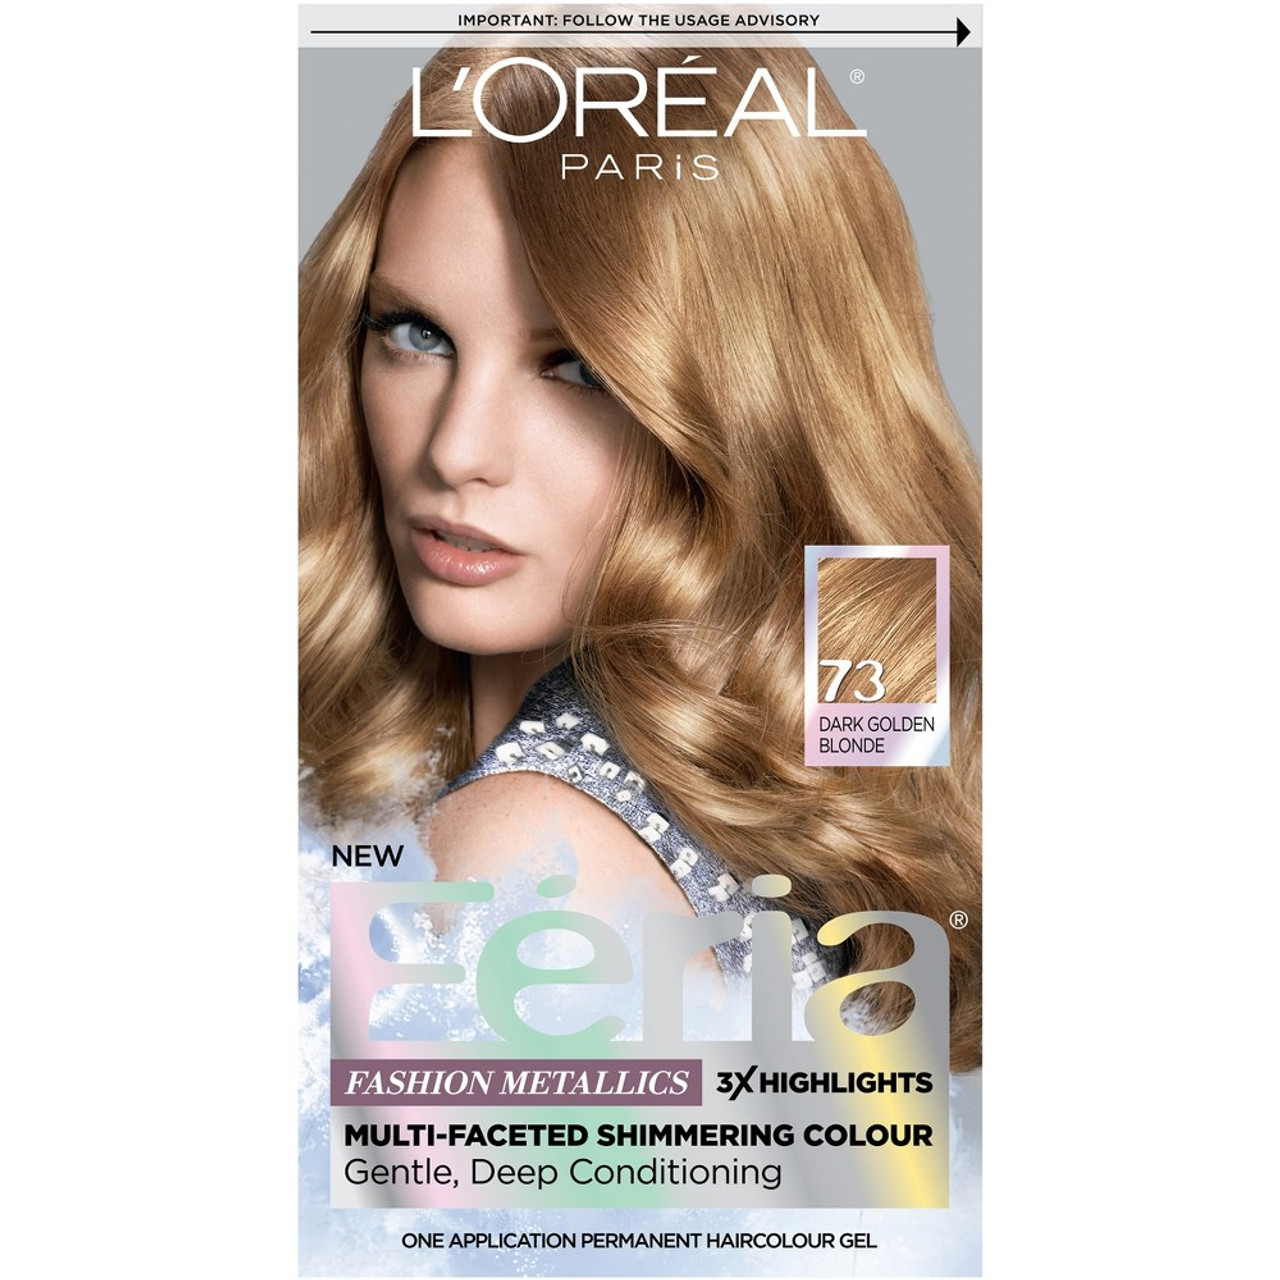 Loreal Paris Feria Multi Faceted Shimmering Colour Permanent